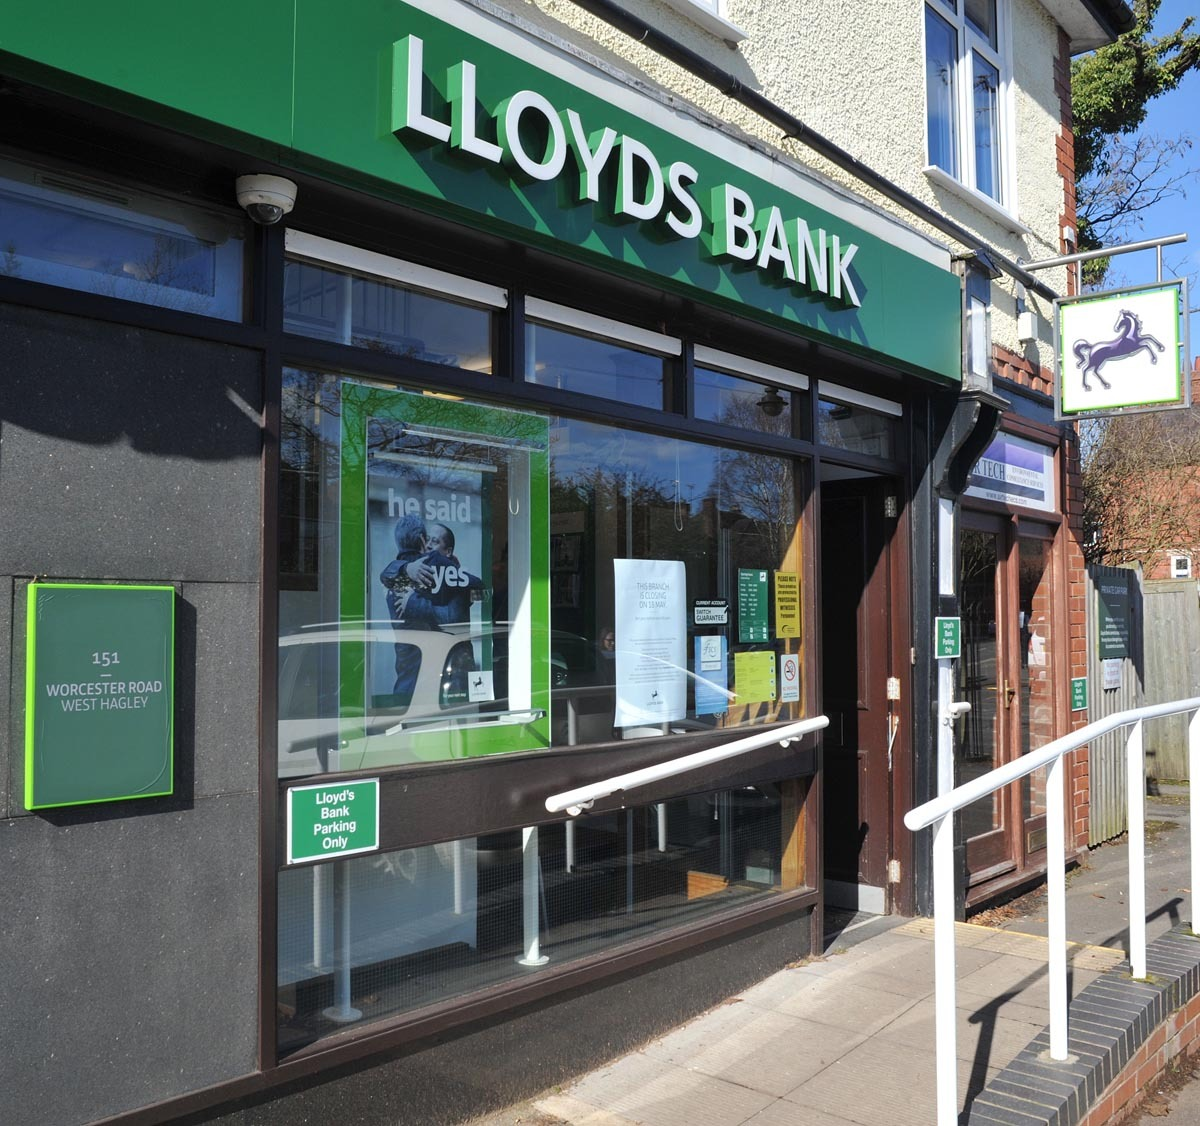 The closure of Lloyds Bank's West Hagley branch has been delayed until October 5